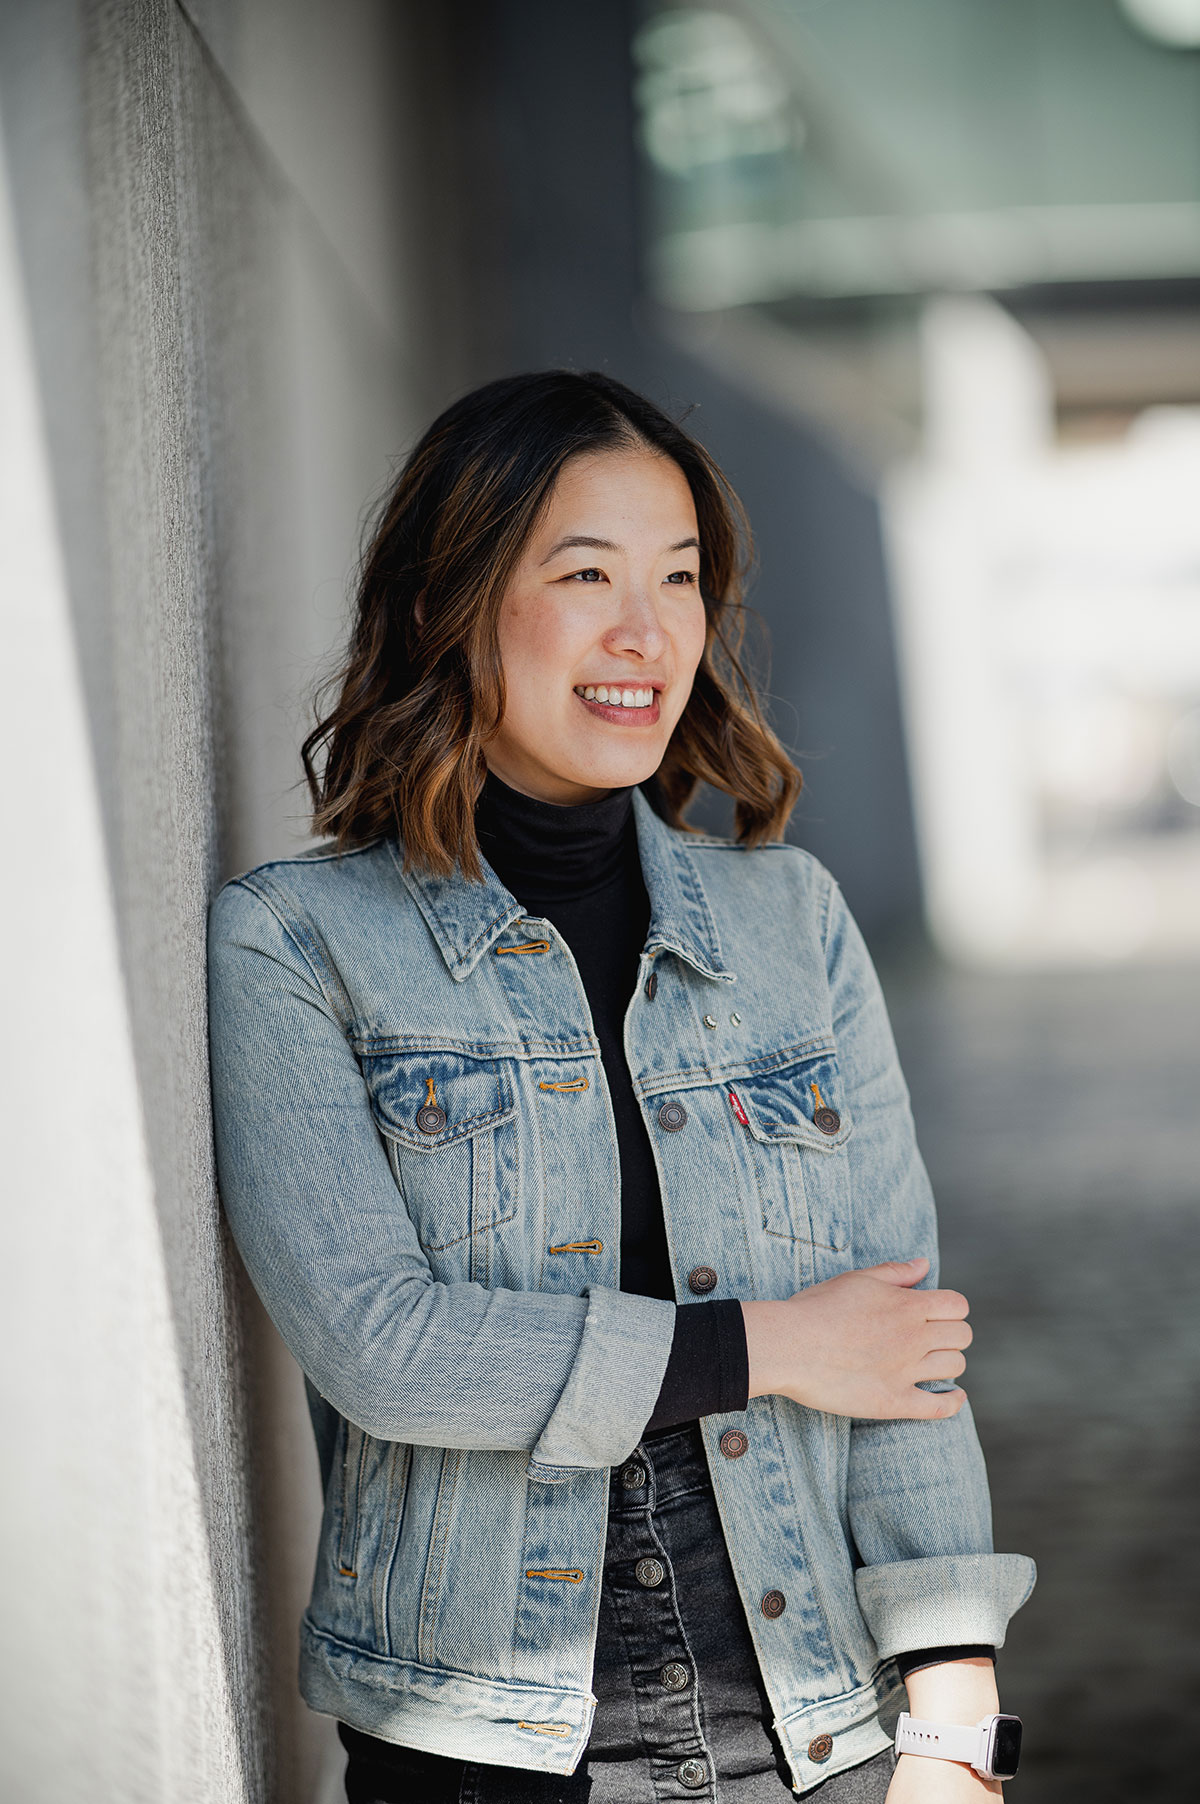 Woman in denim jacket leaning against wall